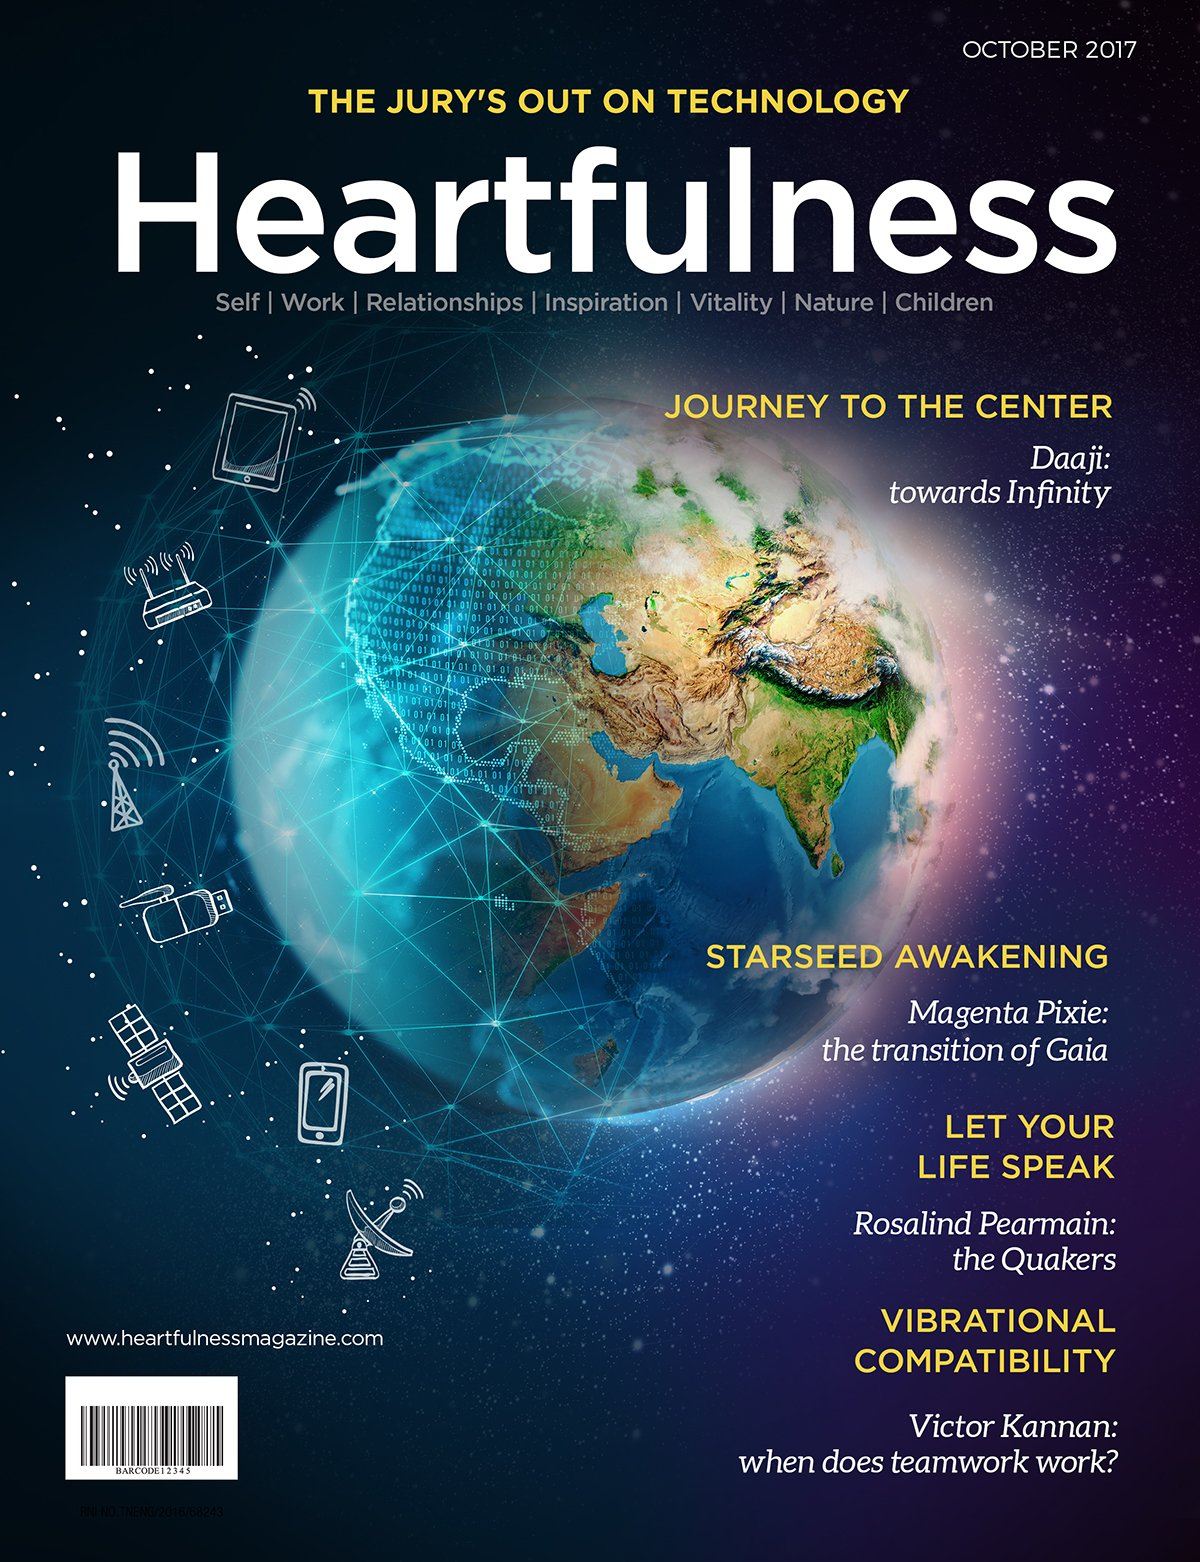 Heartfulness eMagazine - October 2017